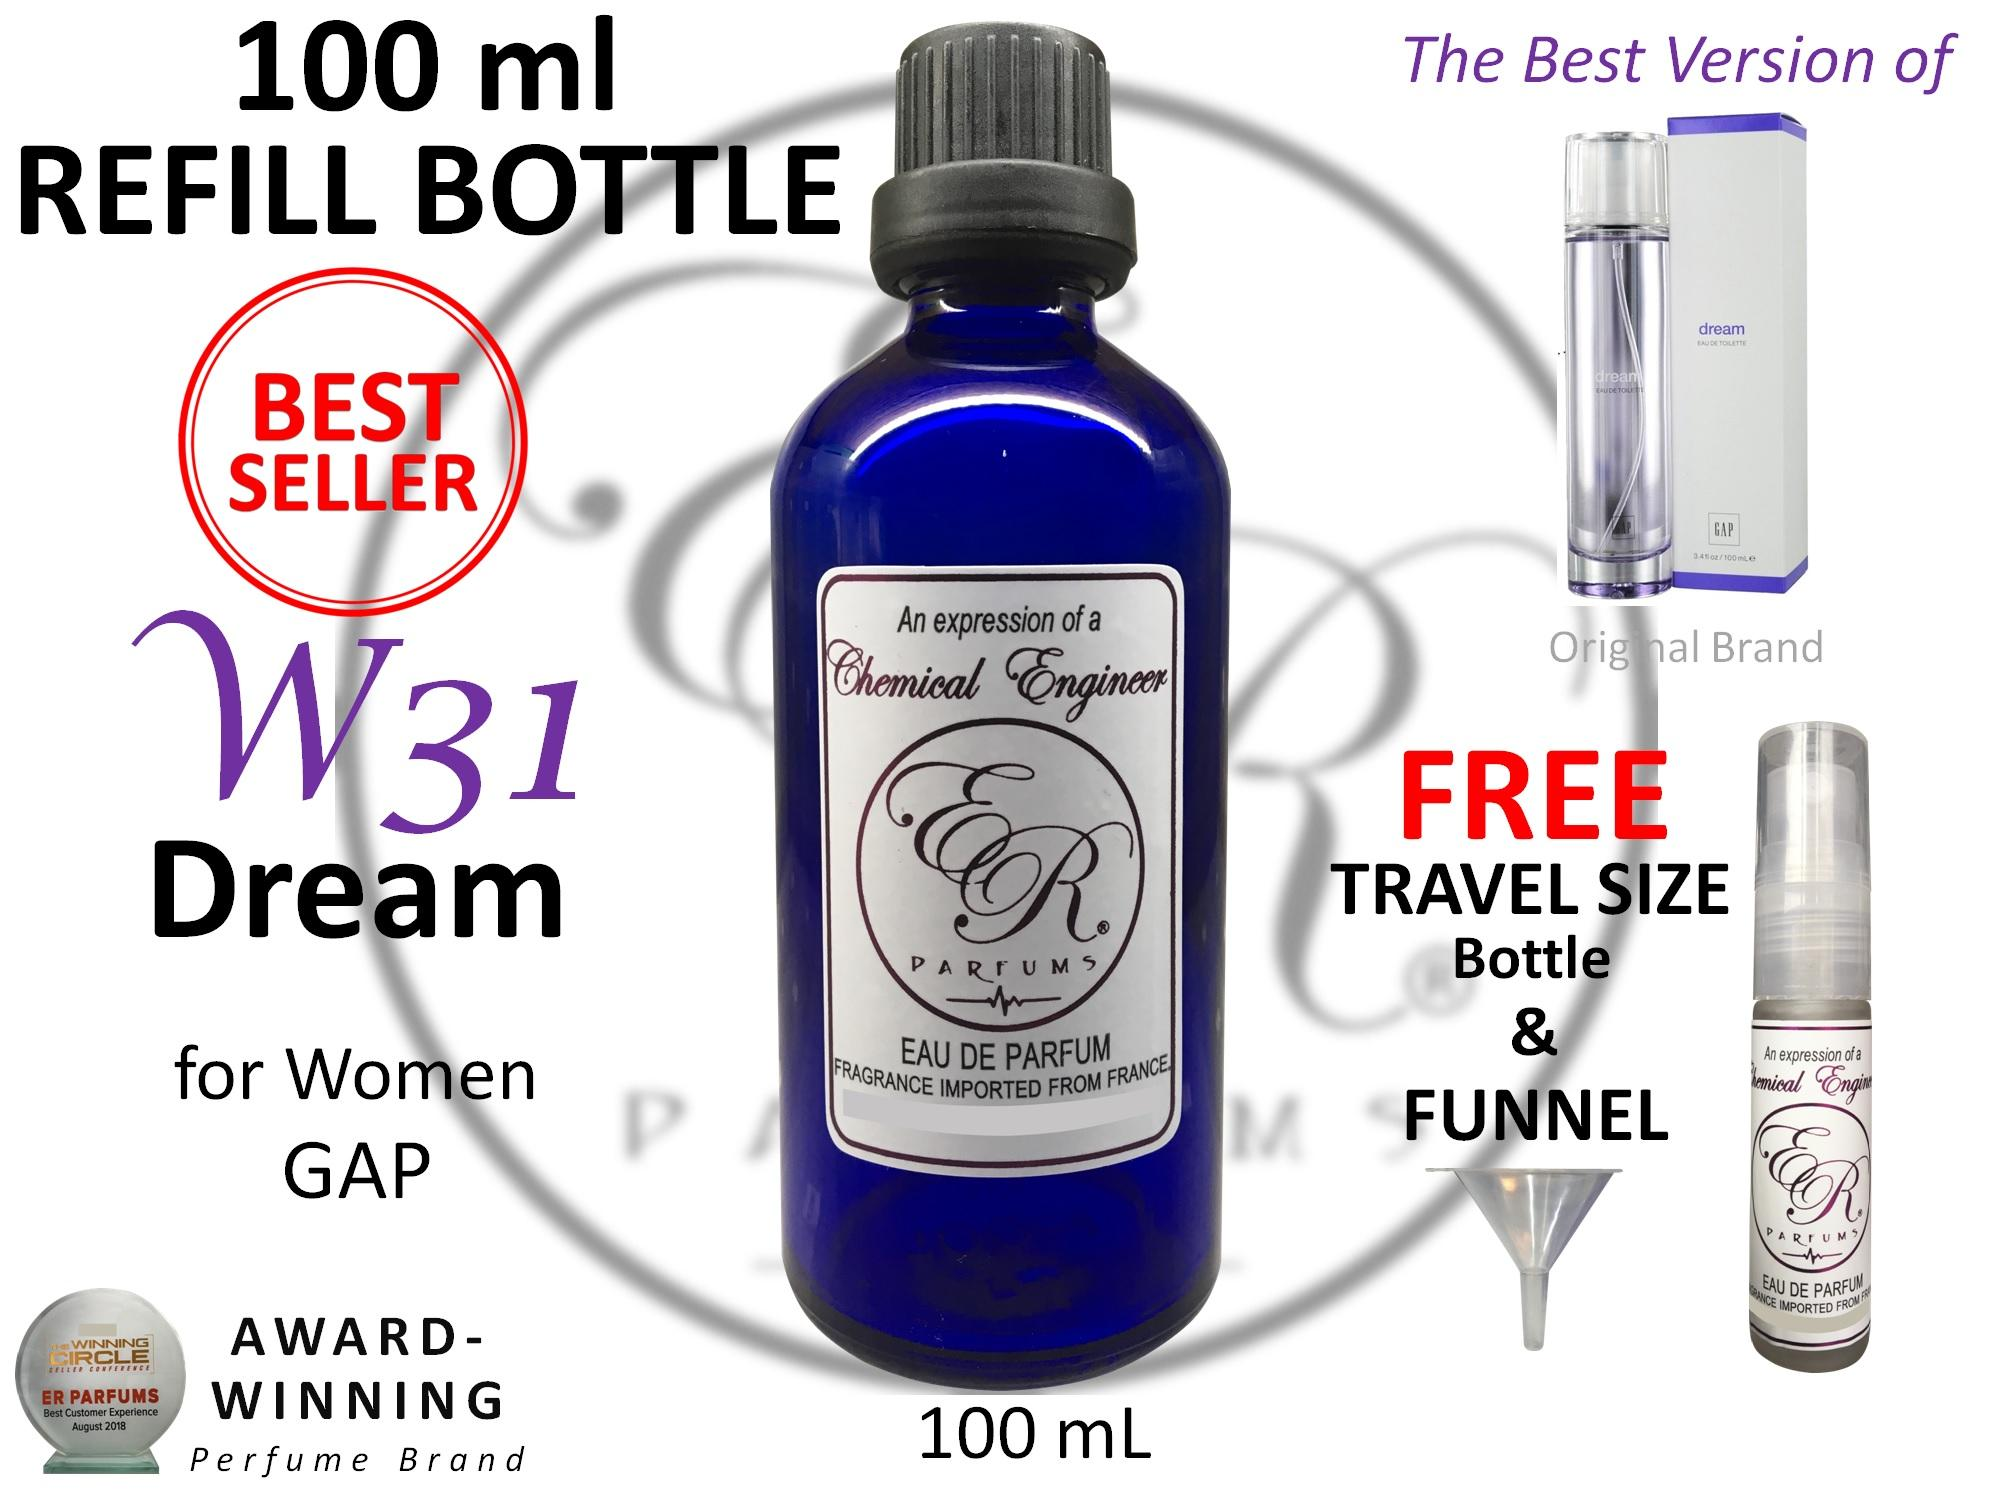 ER PARFUMS W31 Dream for Women by GAP 1 piece 100 mL REFILL BOTTLE with FREE Empty Bottle - BEST VERSION